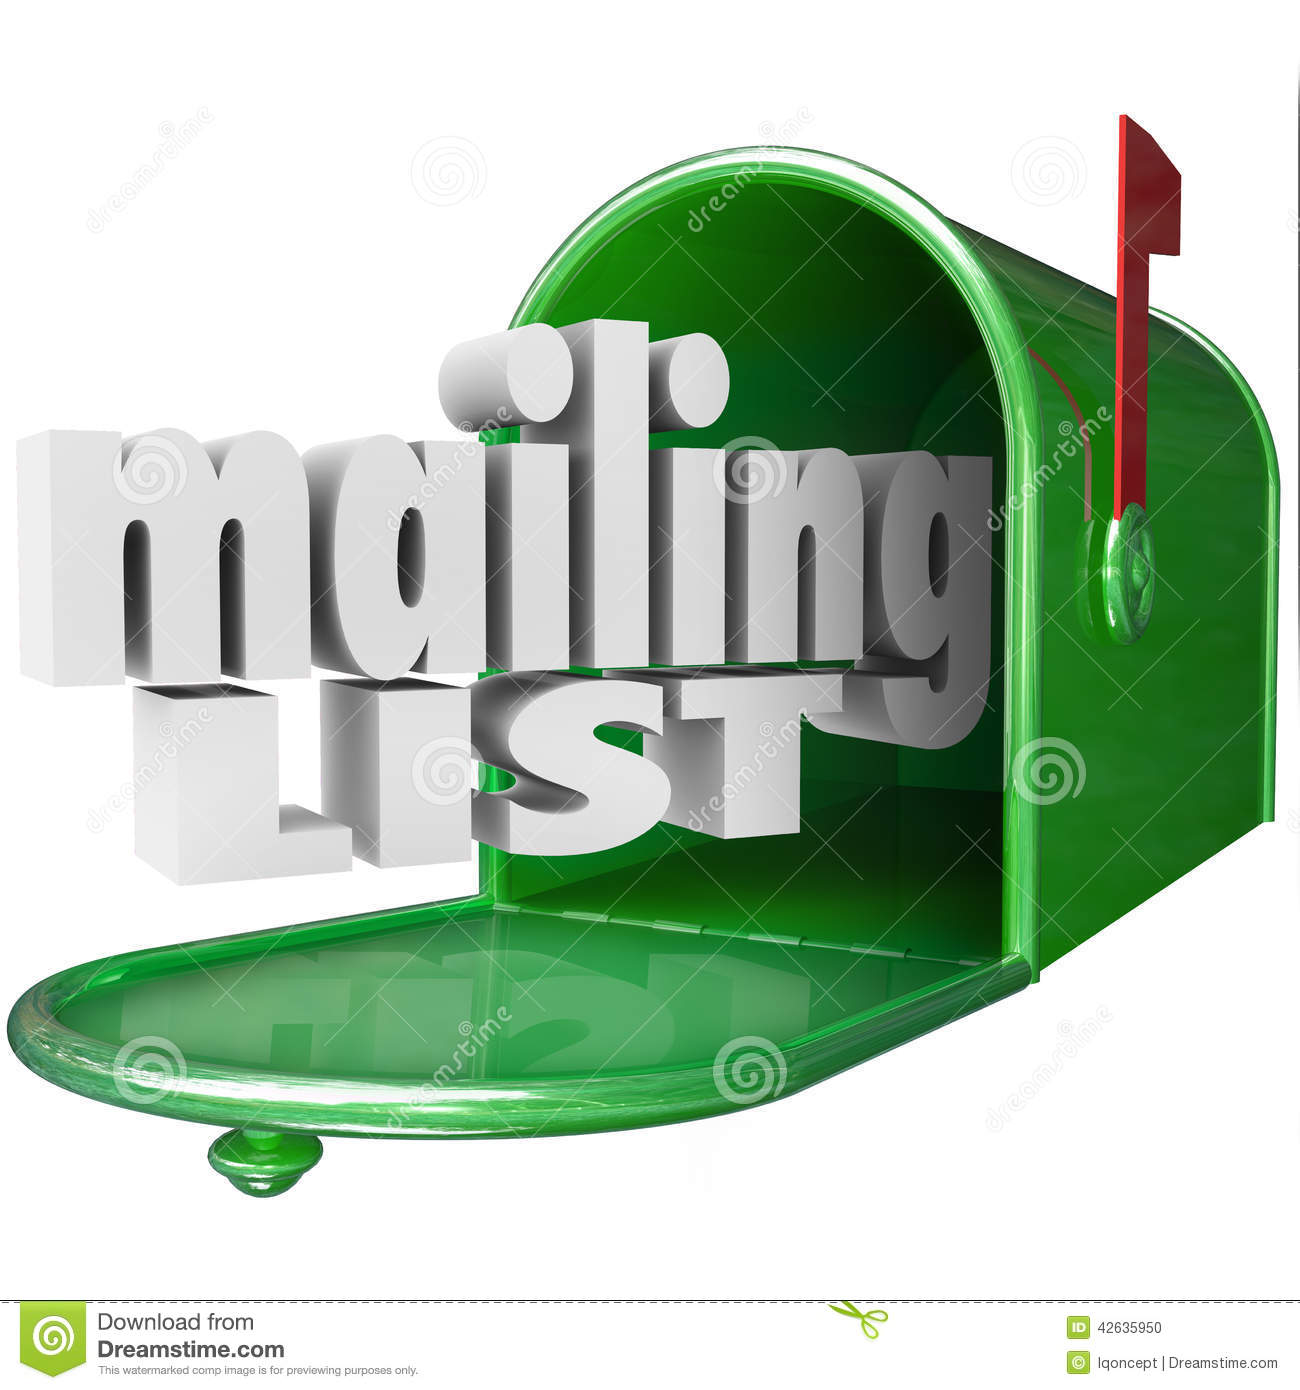 Advertising And Promotional Mugs In Montebello California Mail: Mailing List Databases UK